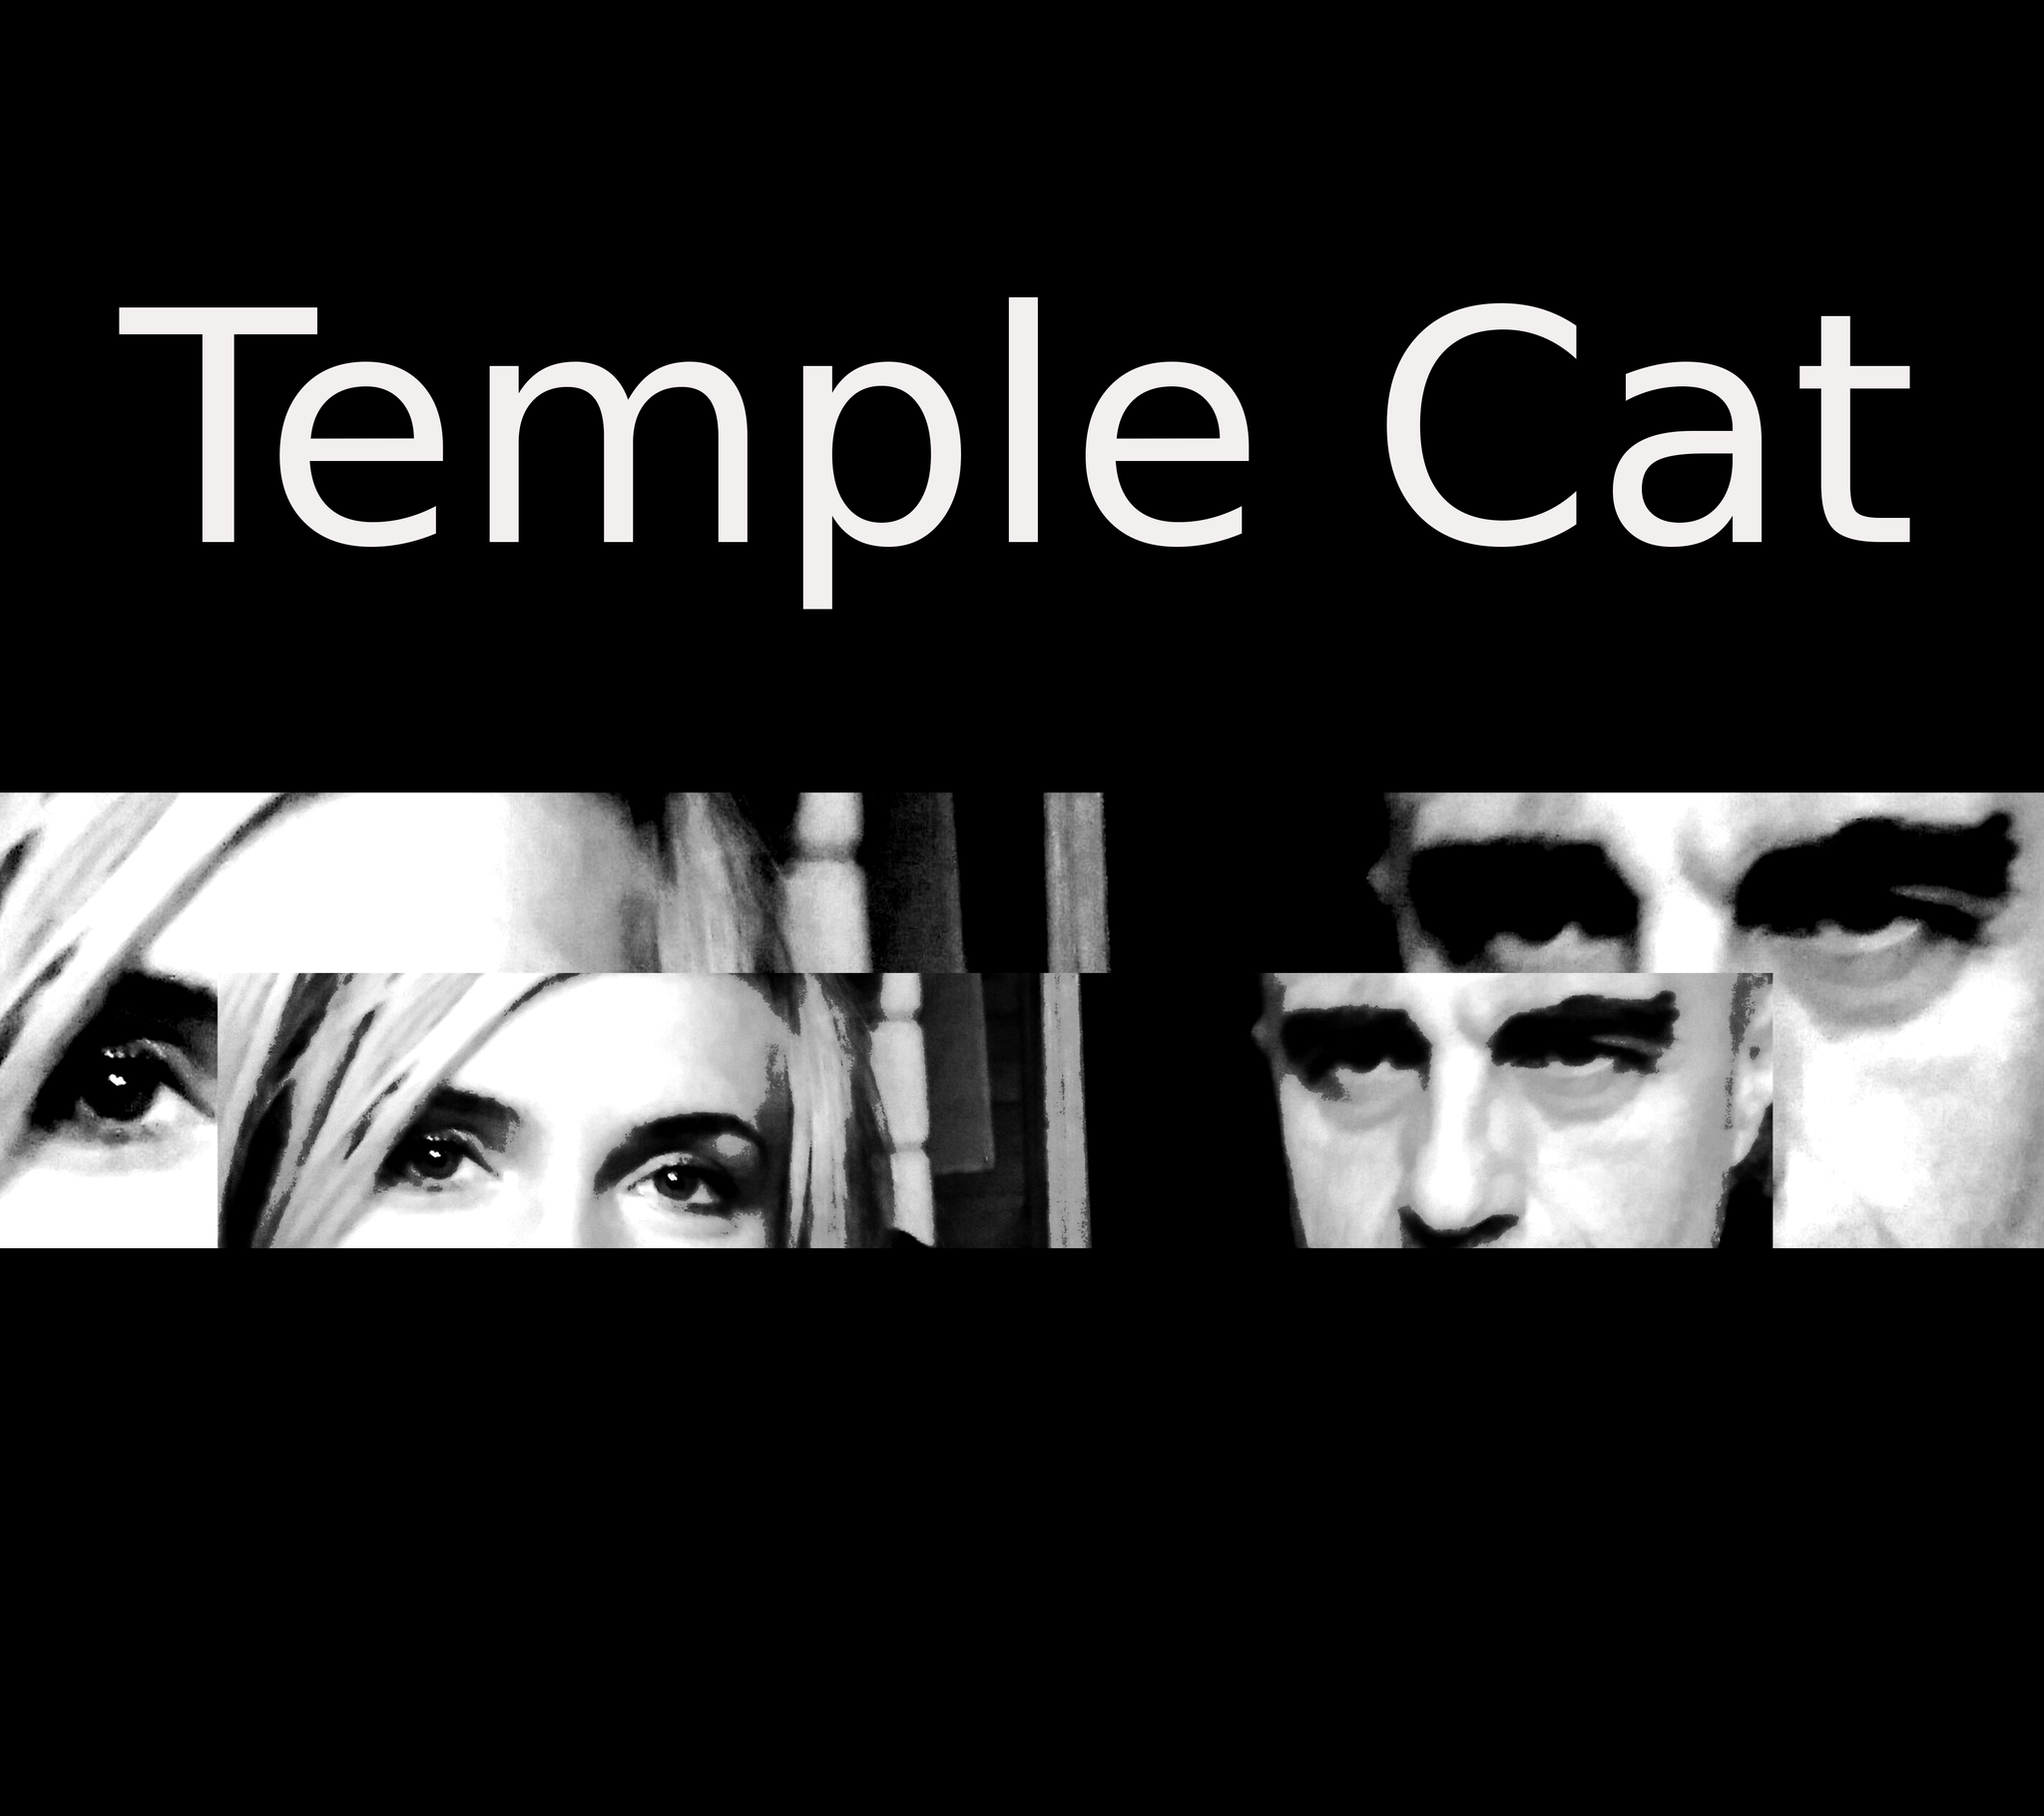 In Silence - Temple Cat